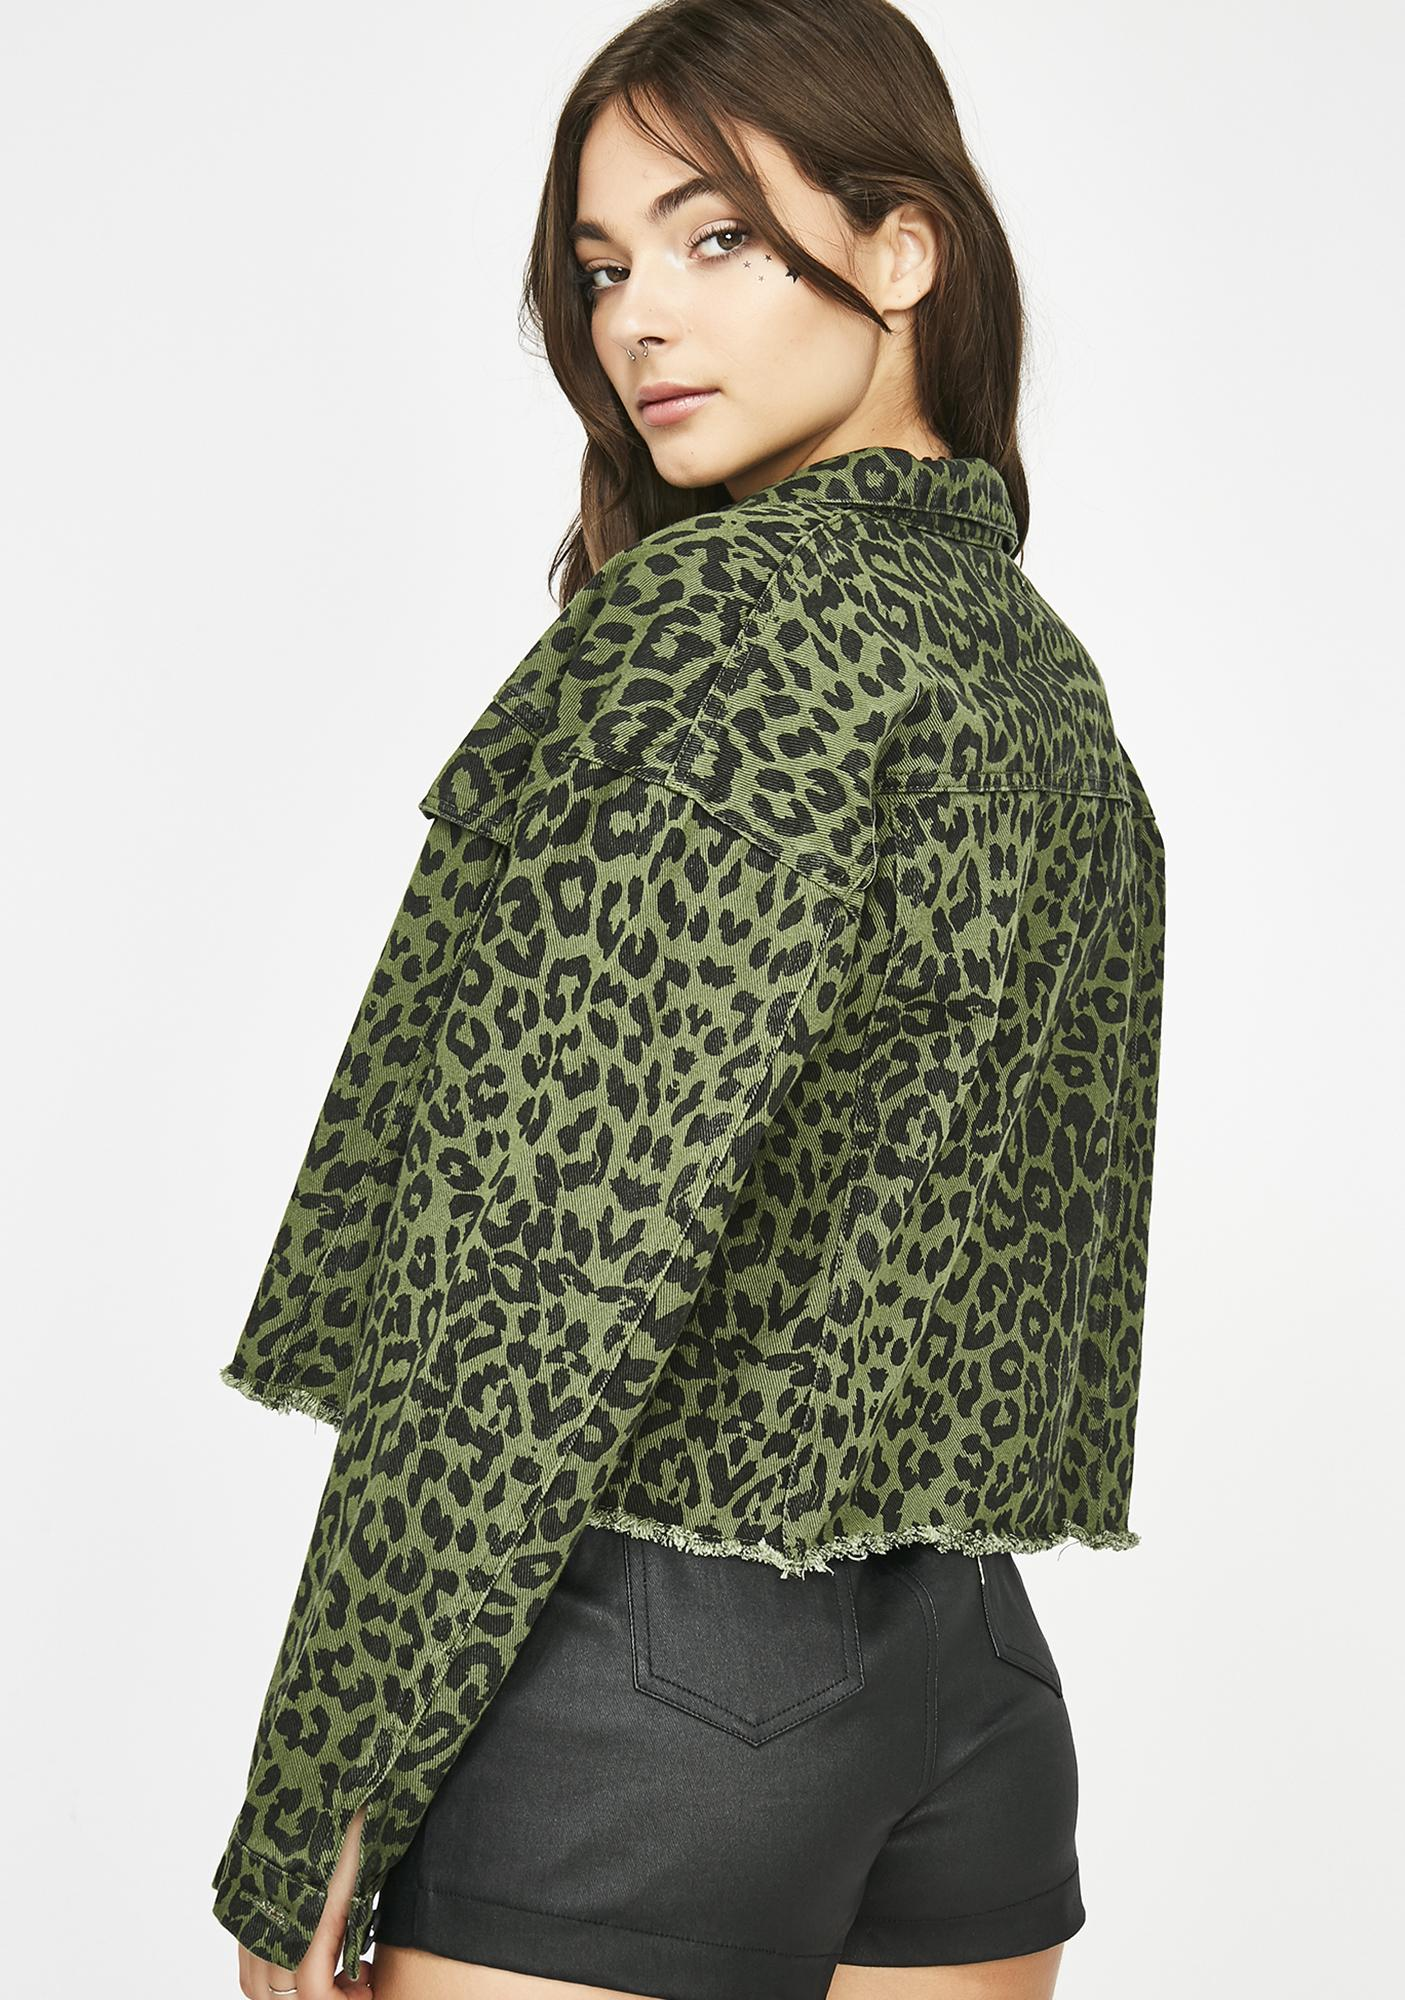 Queen Kitty Leopard Jacket